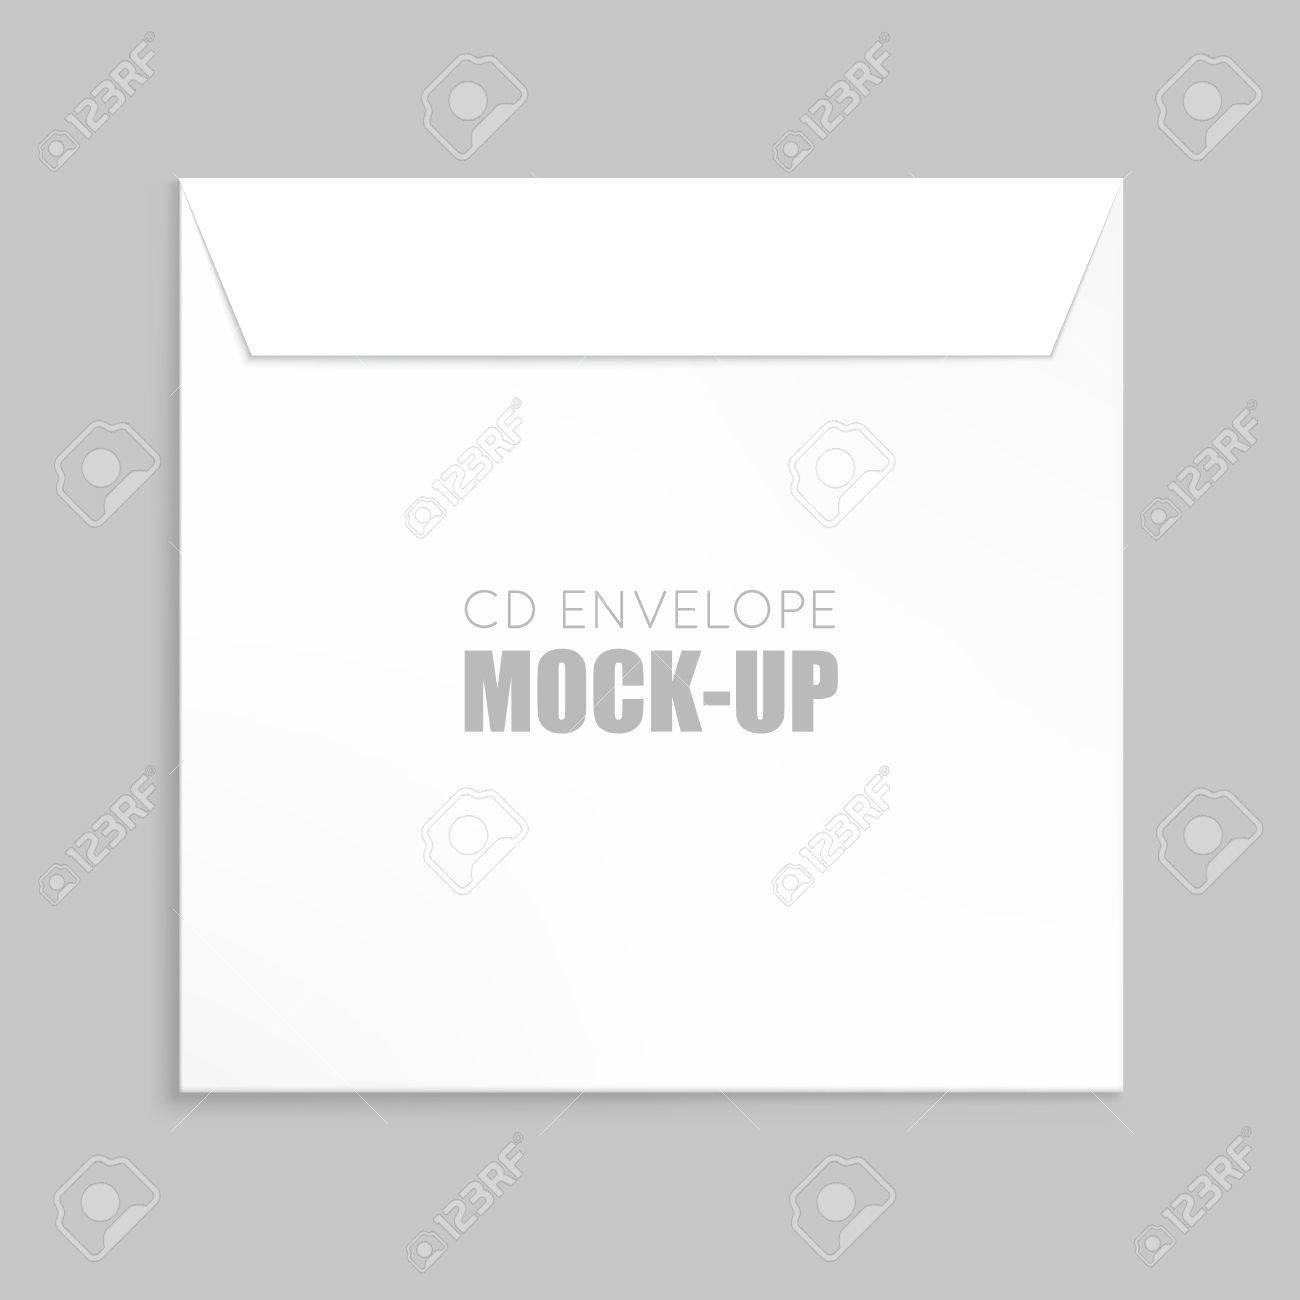 White Cover For Compact Disc Mock Up Template White Envelope – Compact Cd Envelope Template